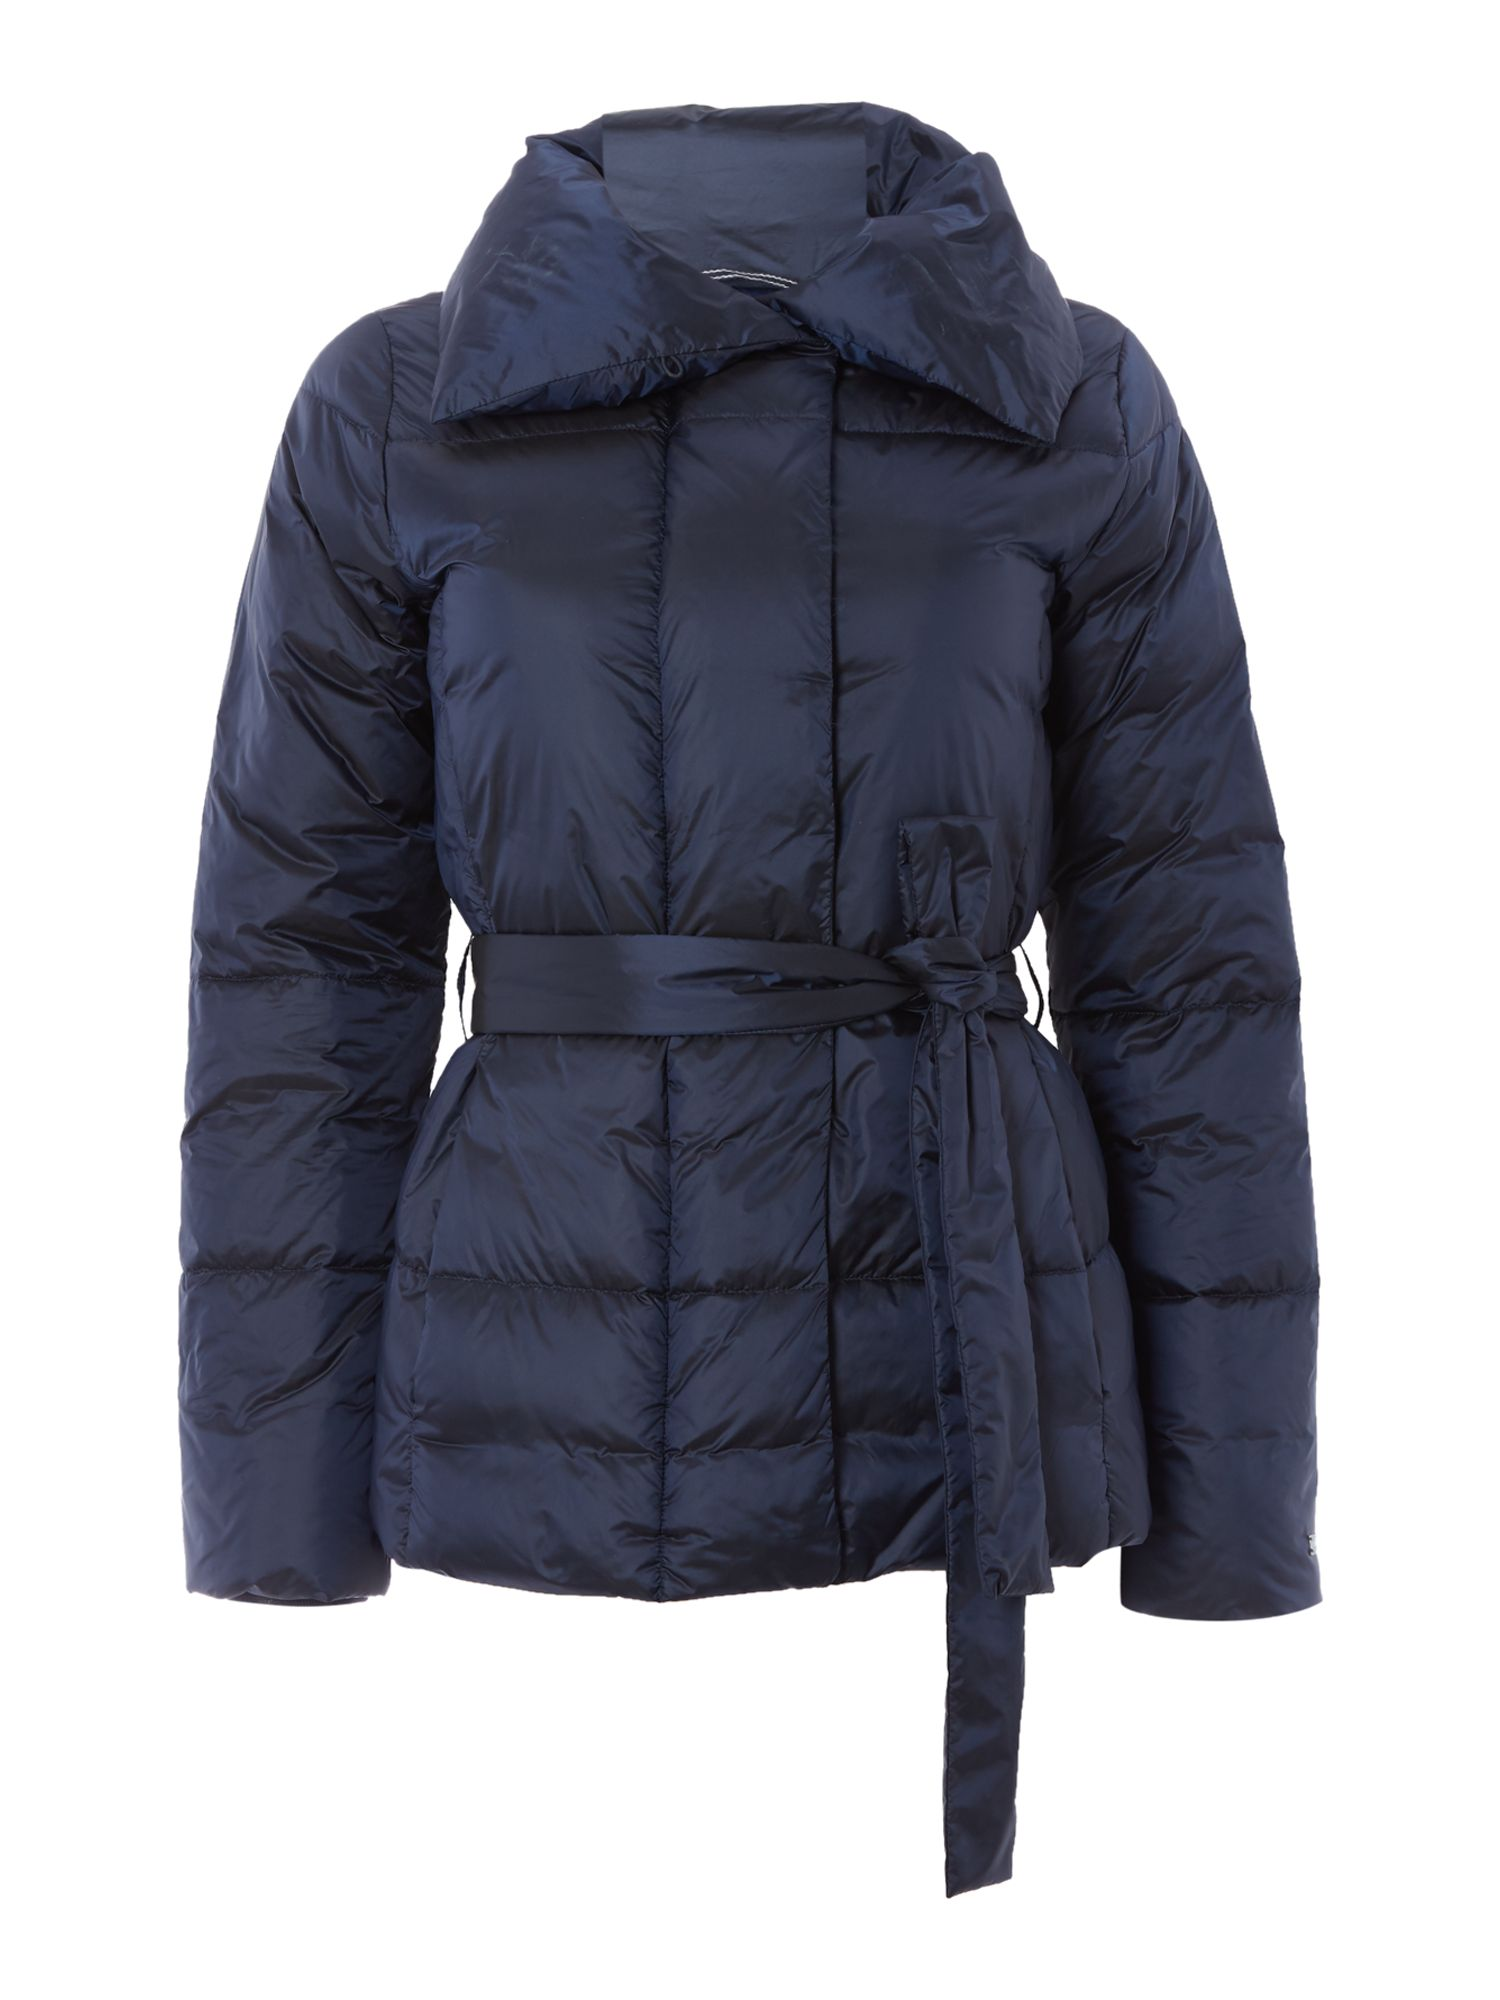 Gant Belted Down Jacket, Marine Review